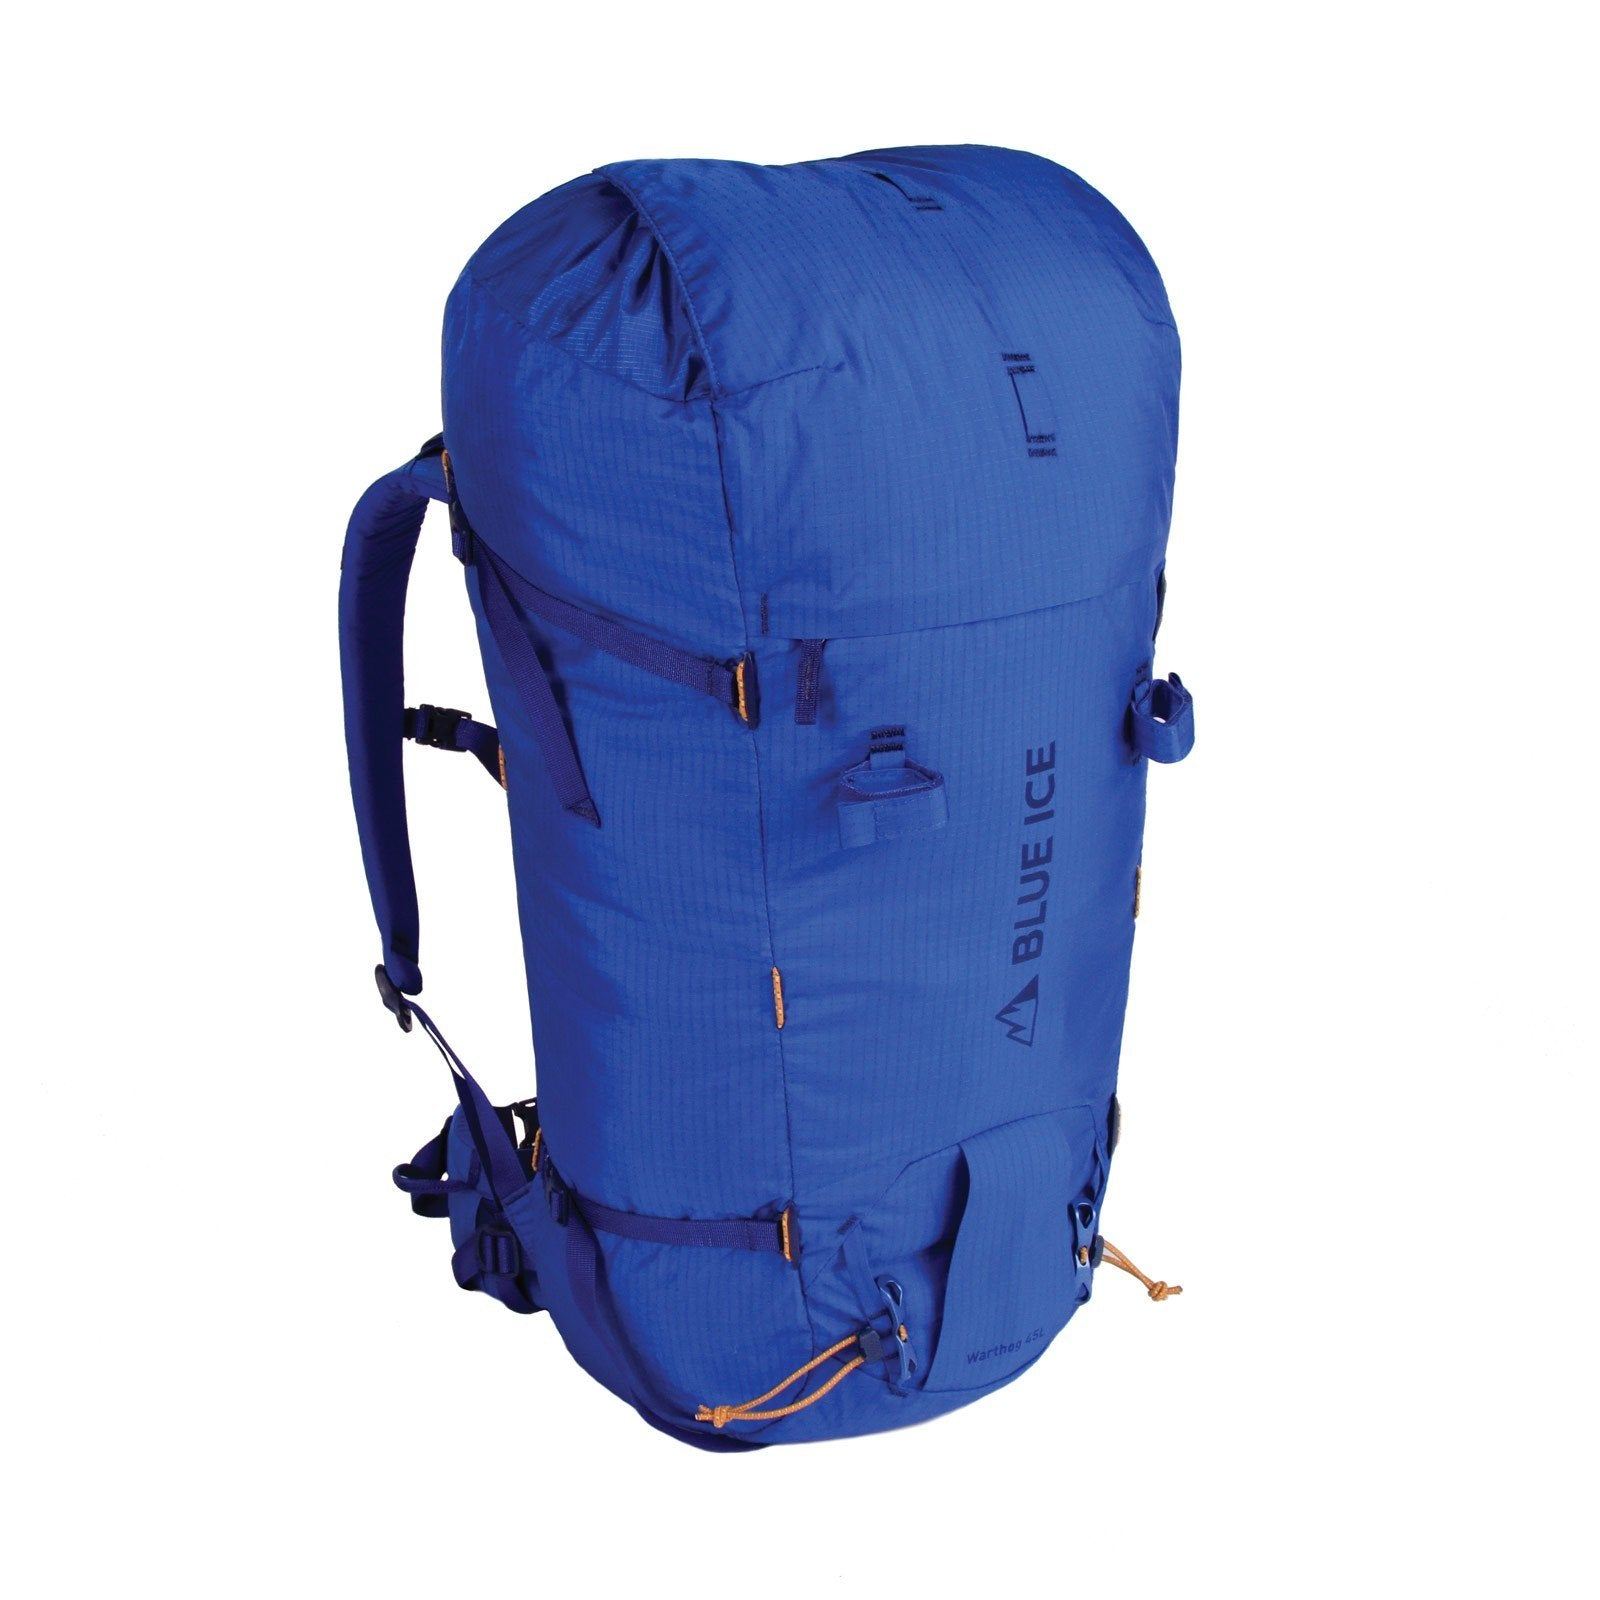 Blue Ice Warthog 45L rucksack, front/side view in blue colour